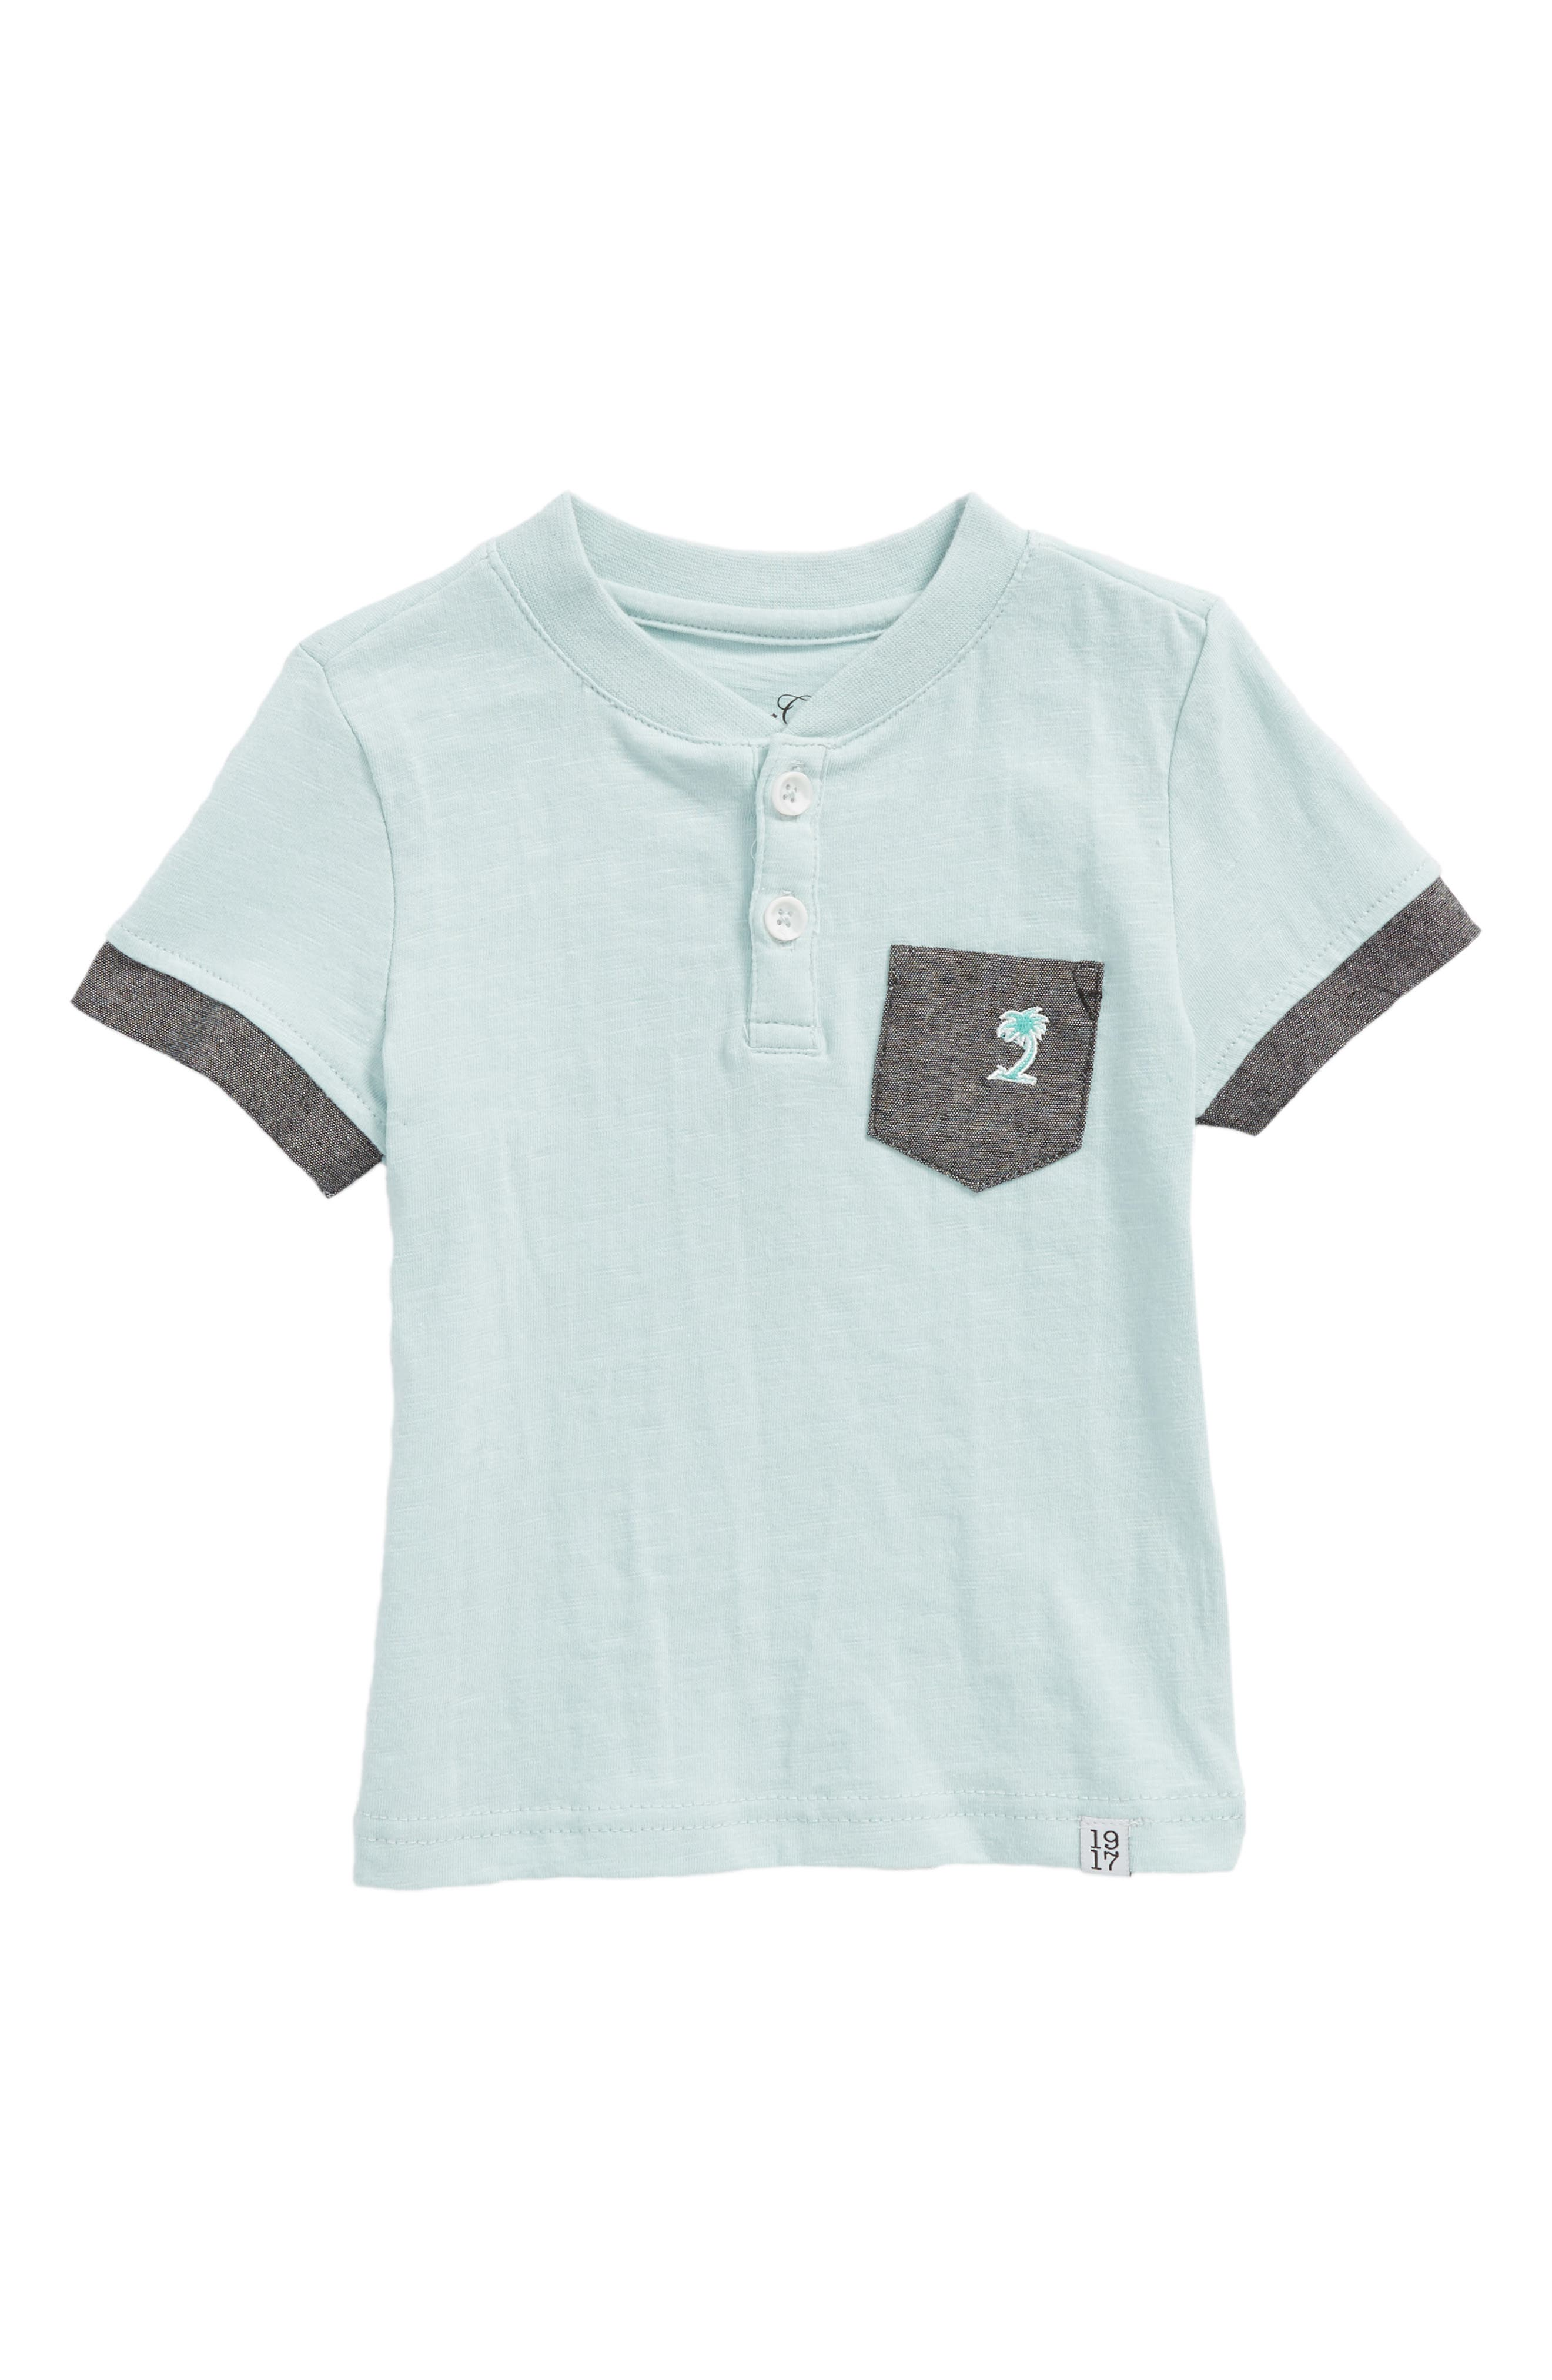 Goodlife T-Shirt,                         Main,                         color, 400